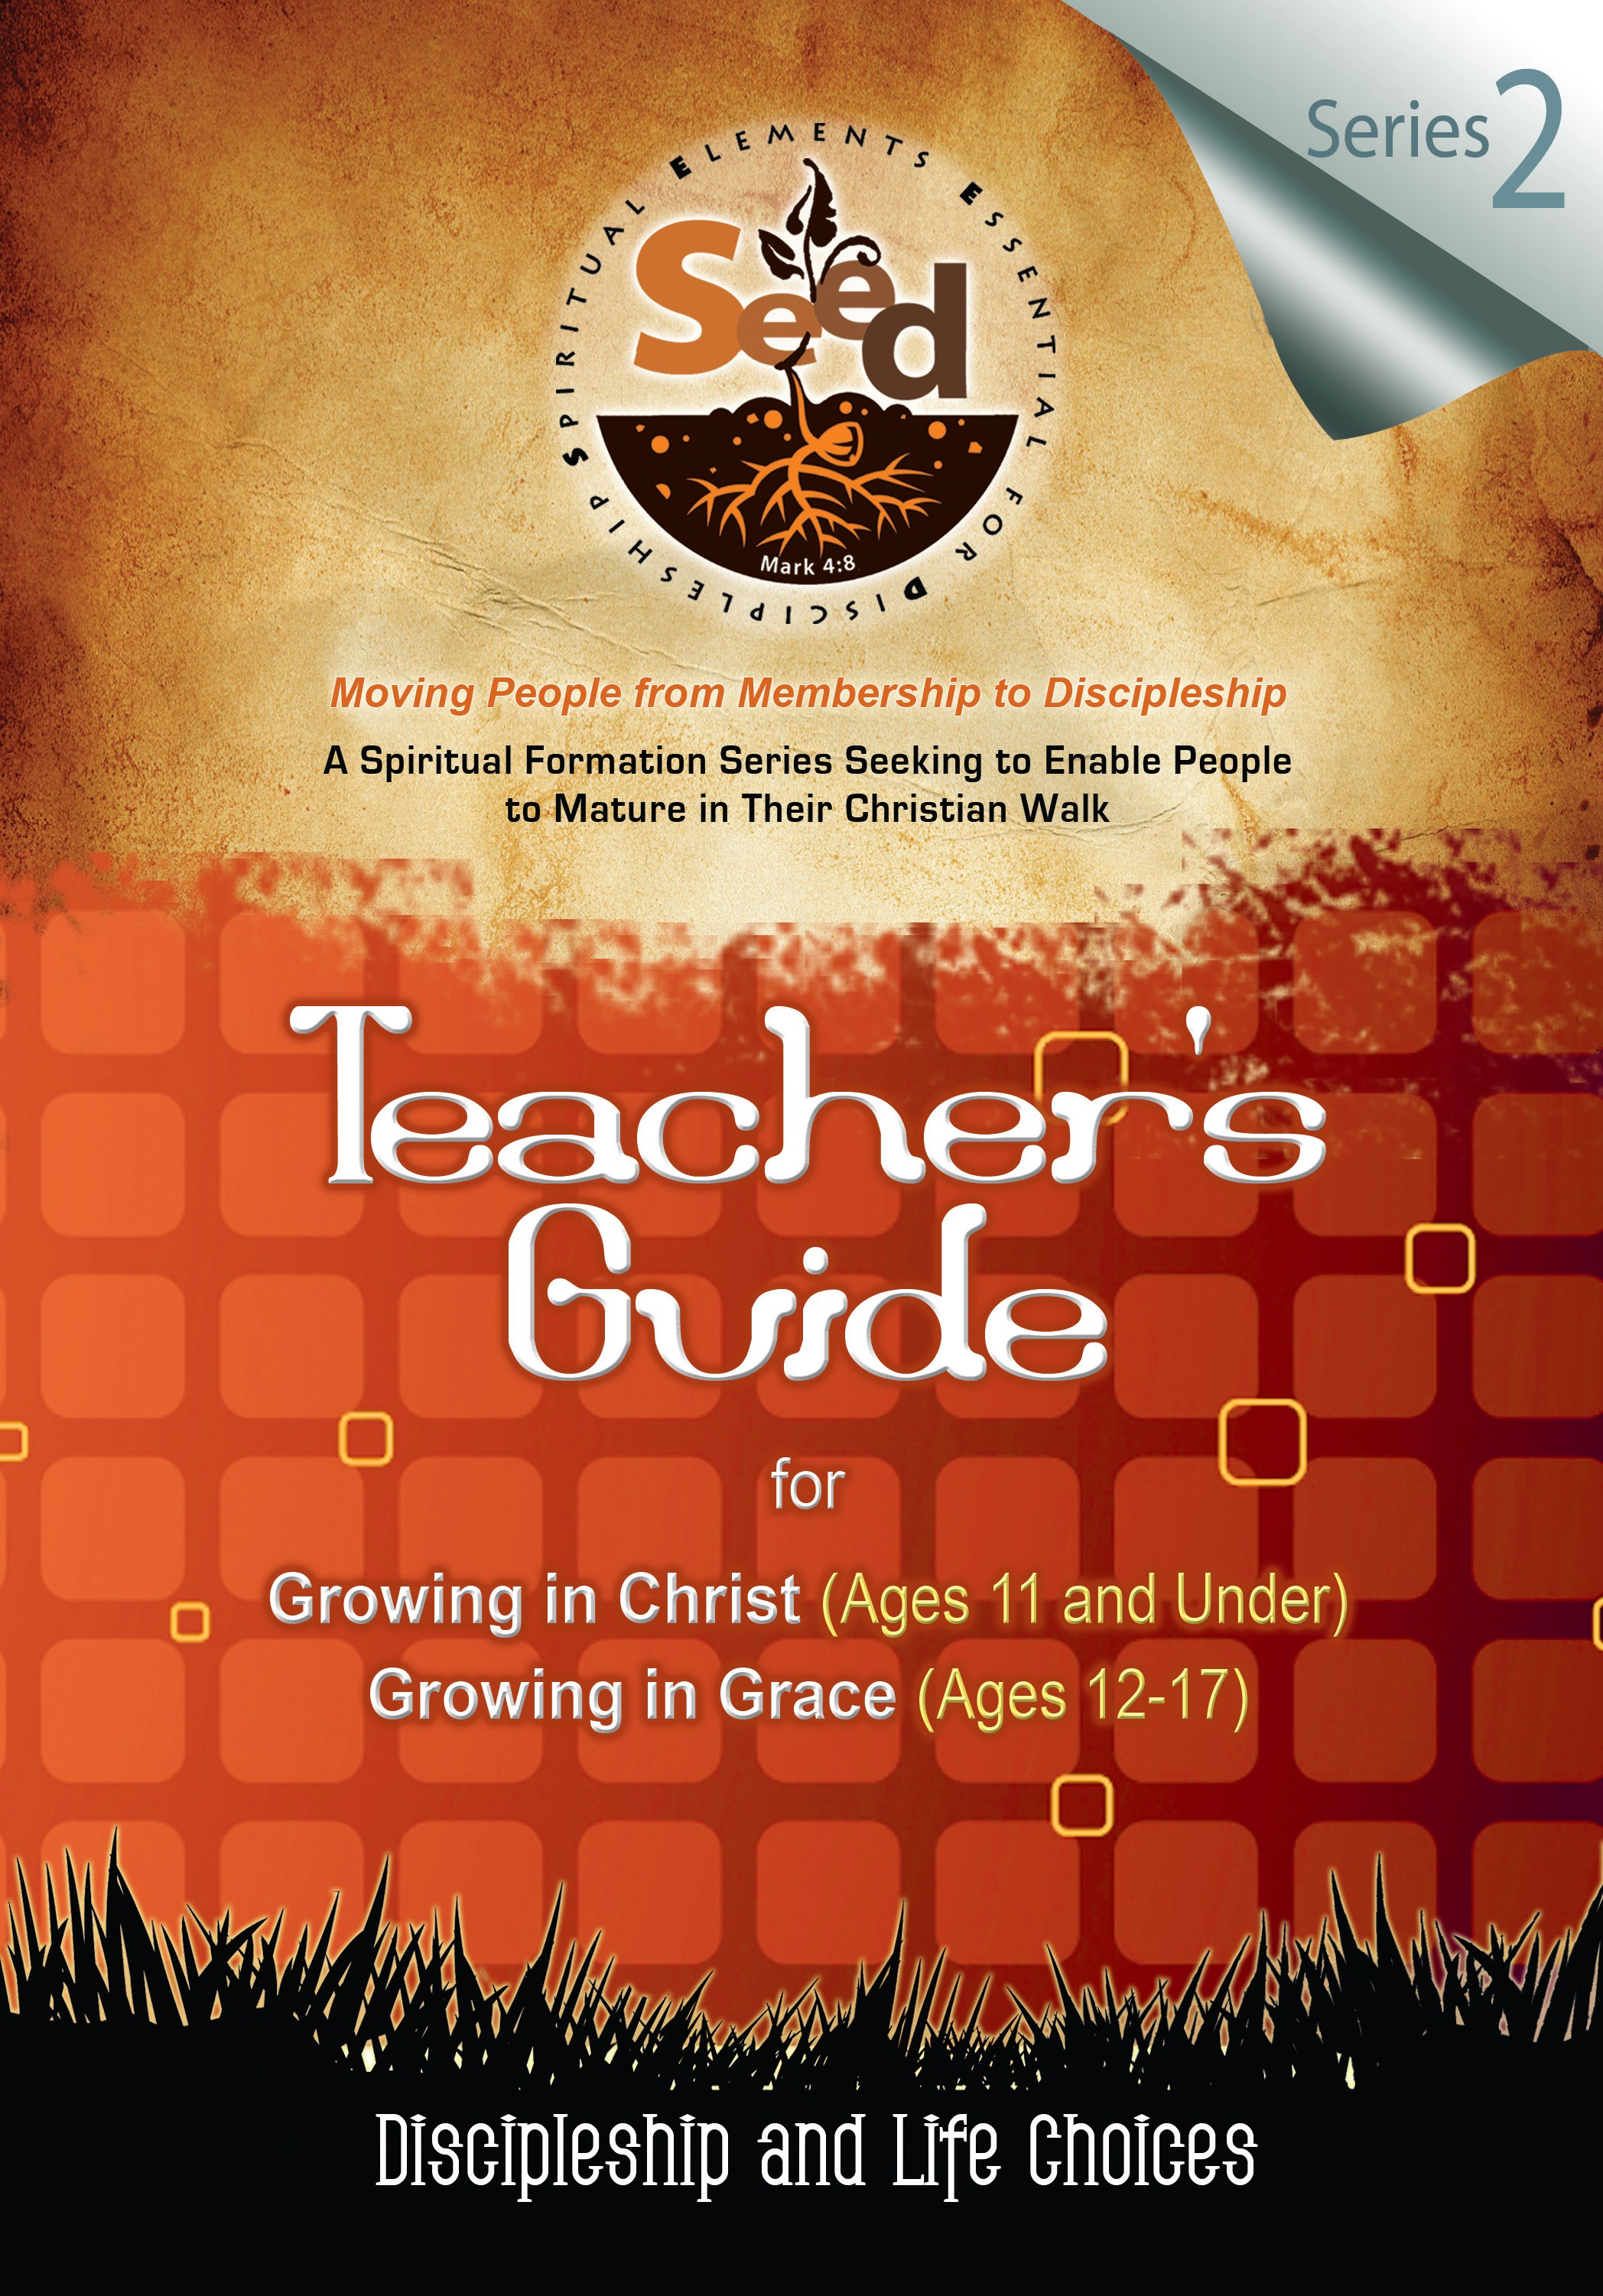 SEED Children/Youth Teacher's Guide: Series 2: Discipleship and Life Choices